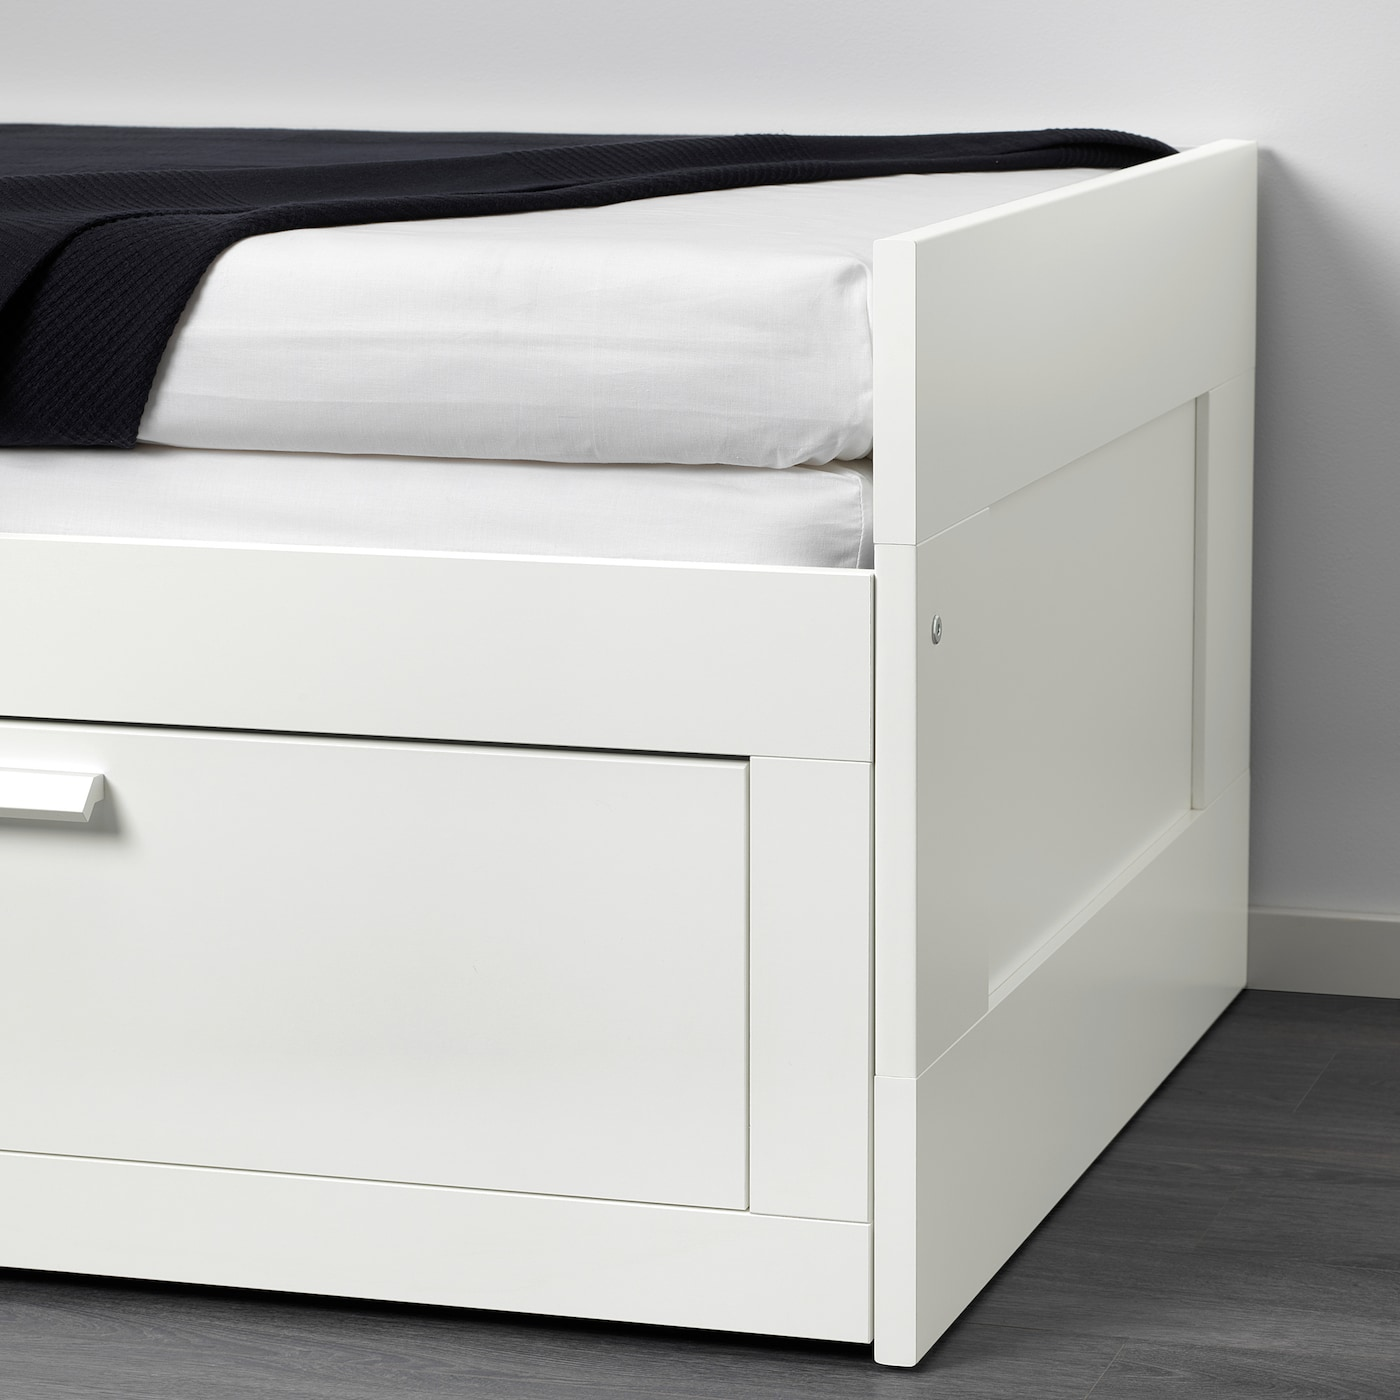 Slaapbank Hemnes Ikea.Brimnes Day Bed Frame With 2 Drawers White Ikea